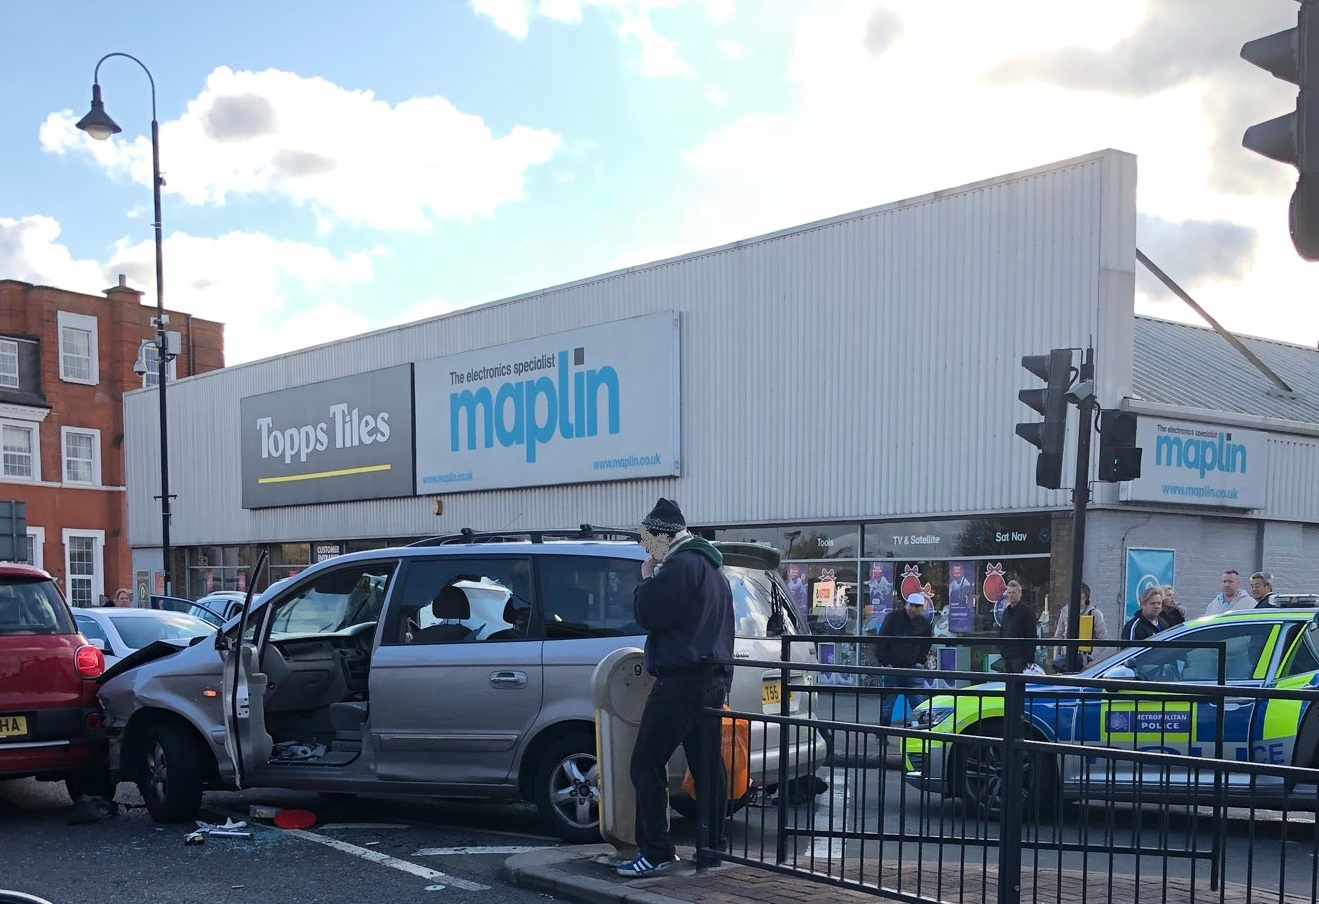 Crayford town centre shut as police chase ends in car crash